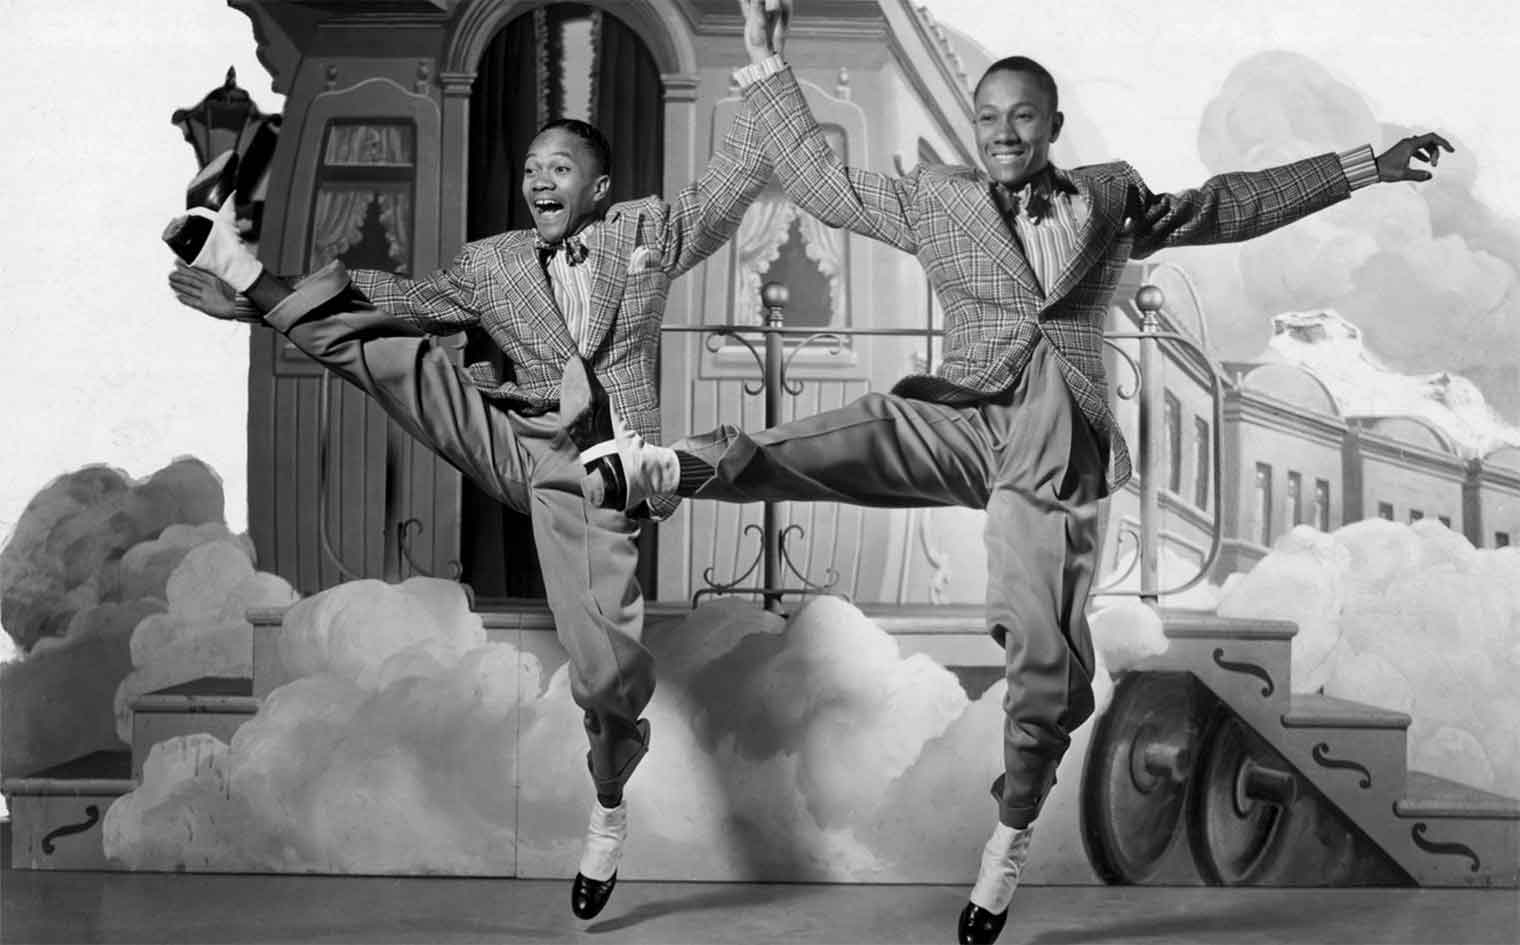 A TRIBUTE TO THE NICHOLAS BROTHERS